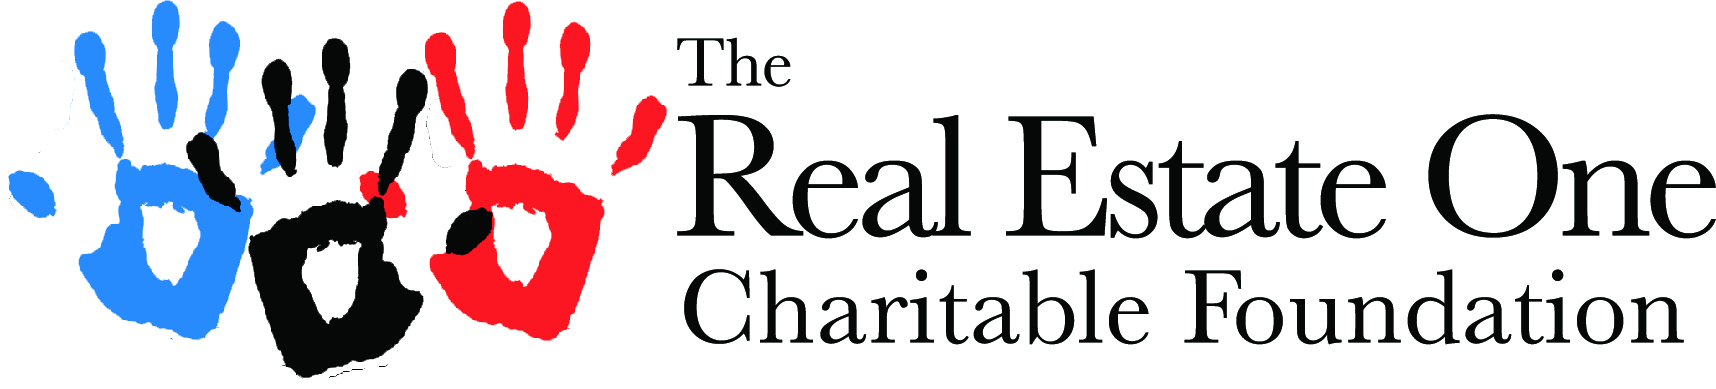 Real Estate One Charitable Foundation